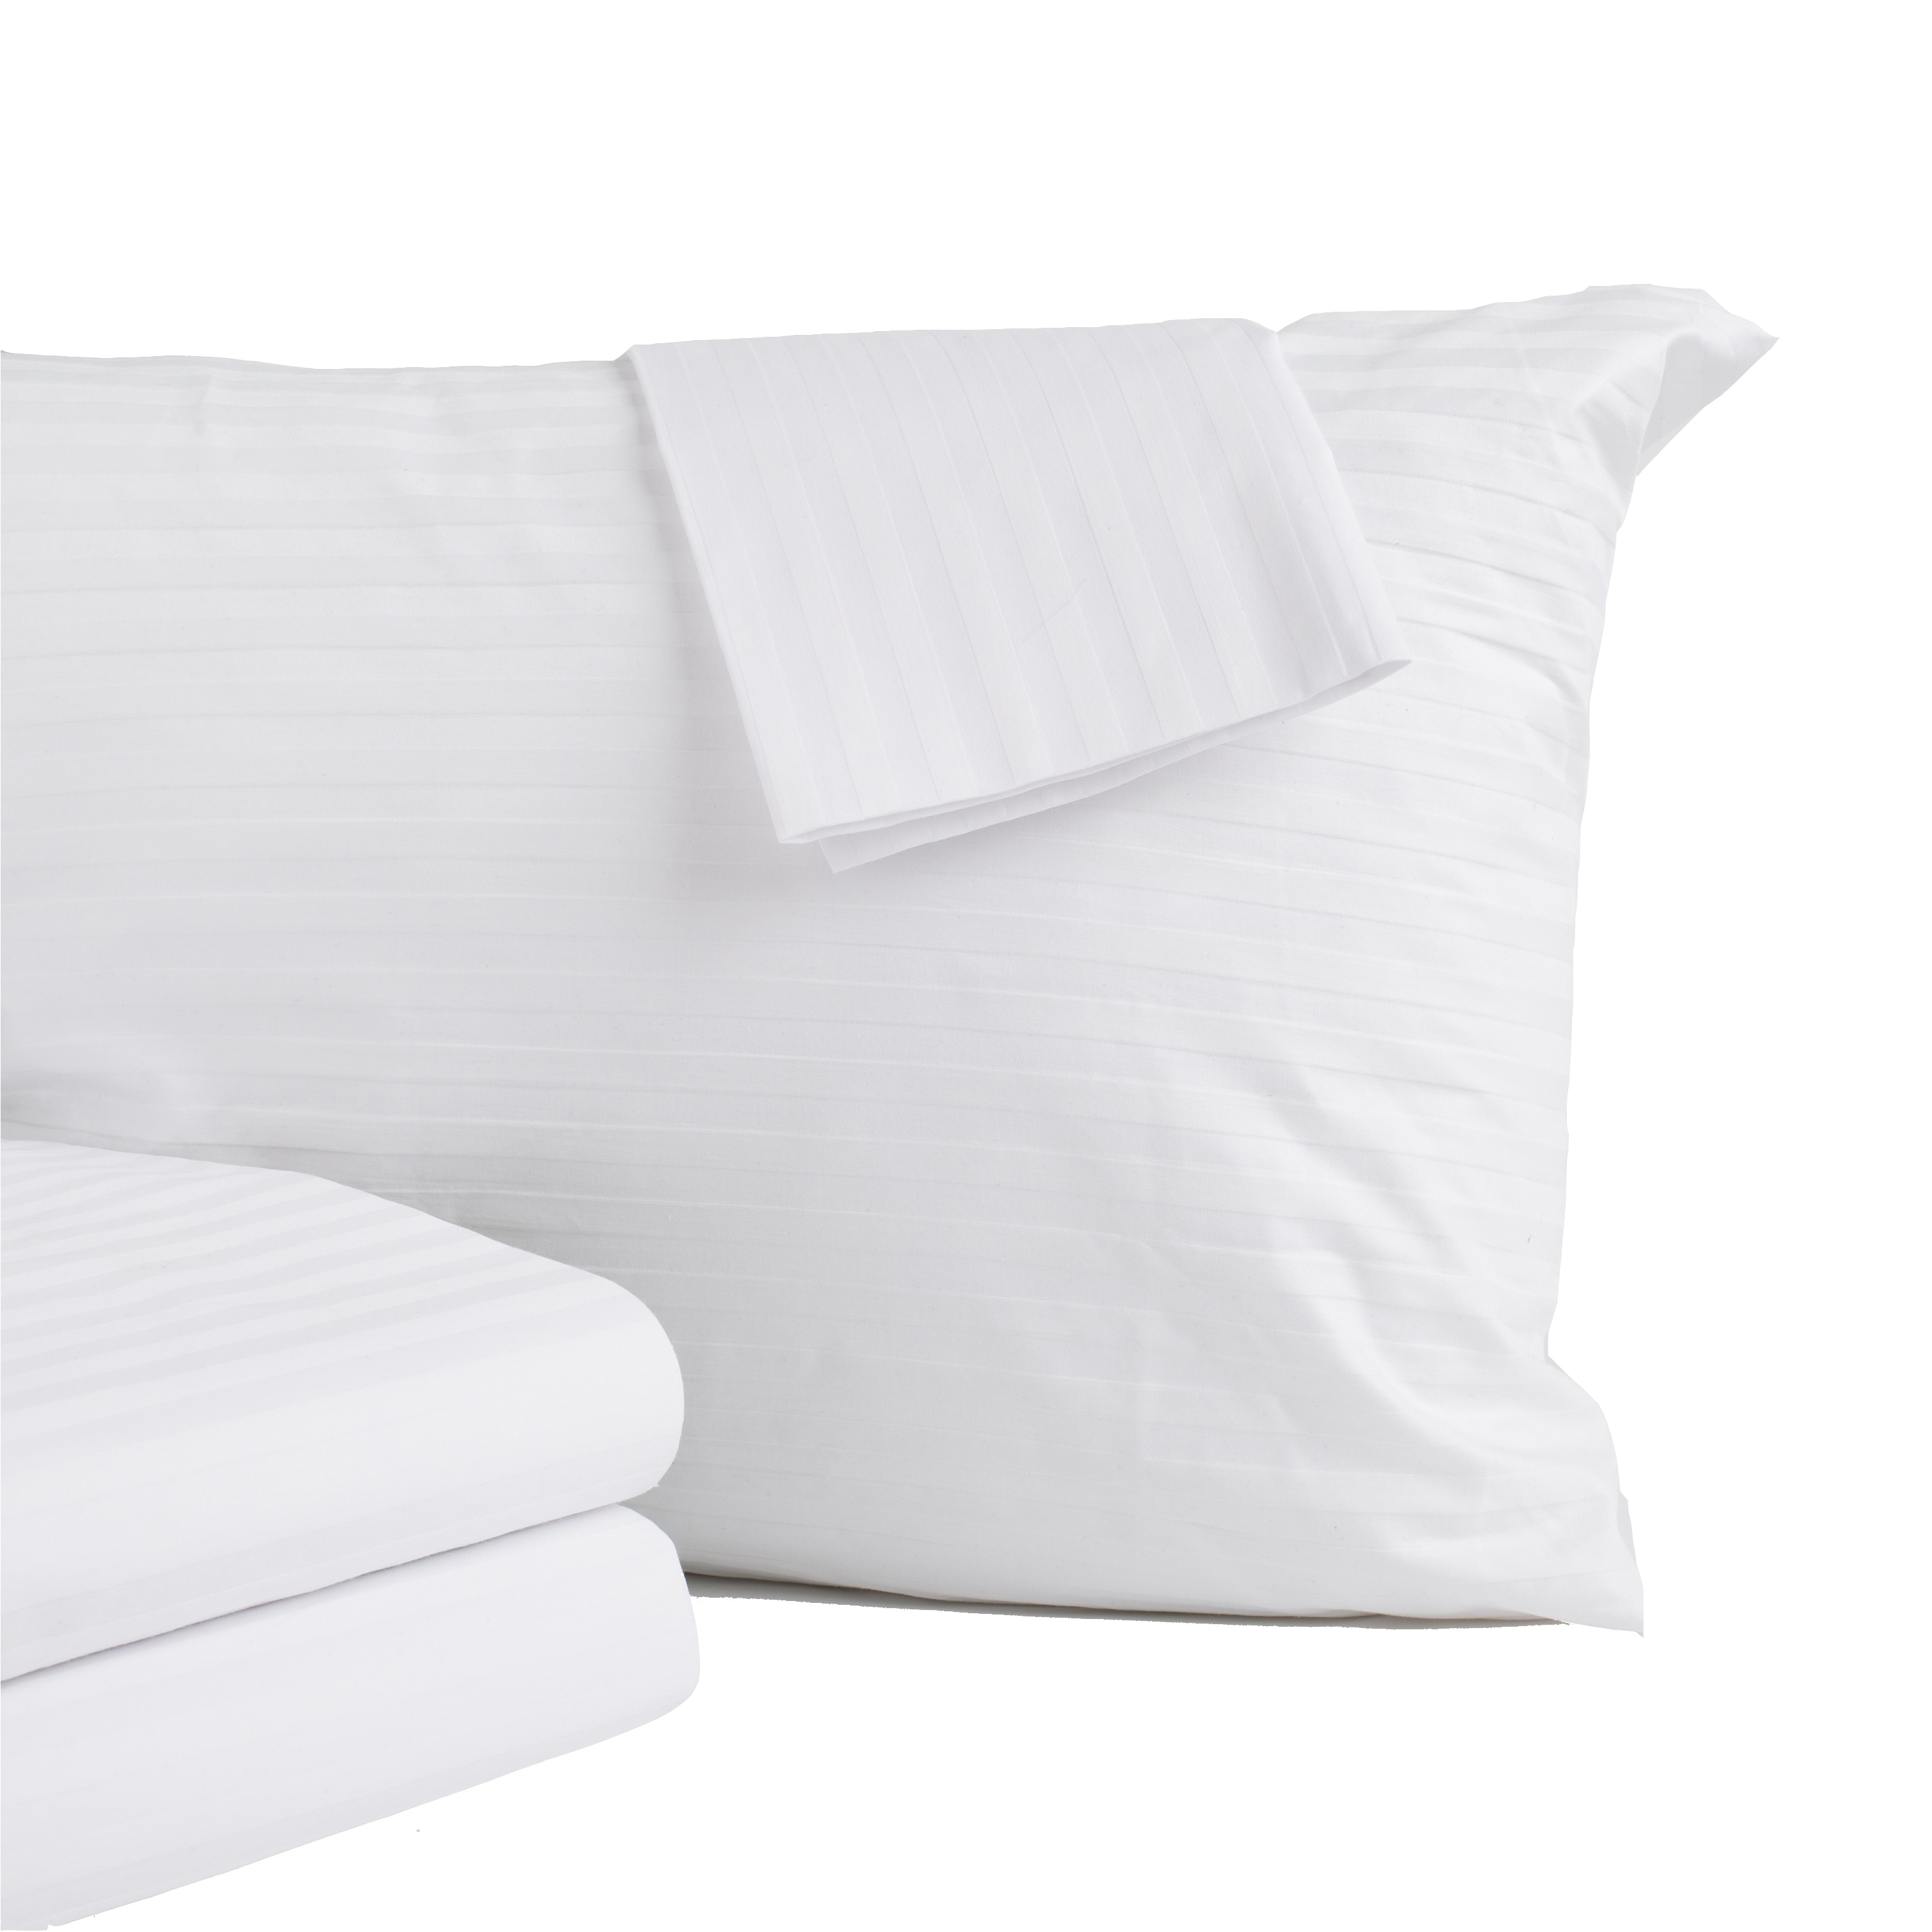 U Allergy Free Pillow Protector 2-pack Zippered 400thread Count 100/% Cotton